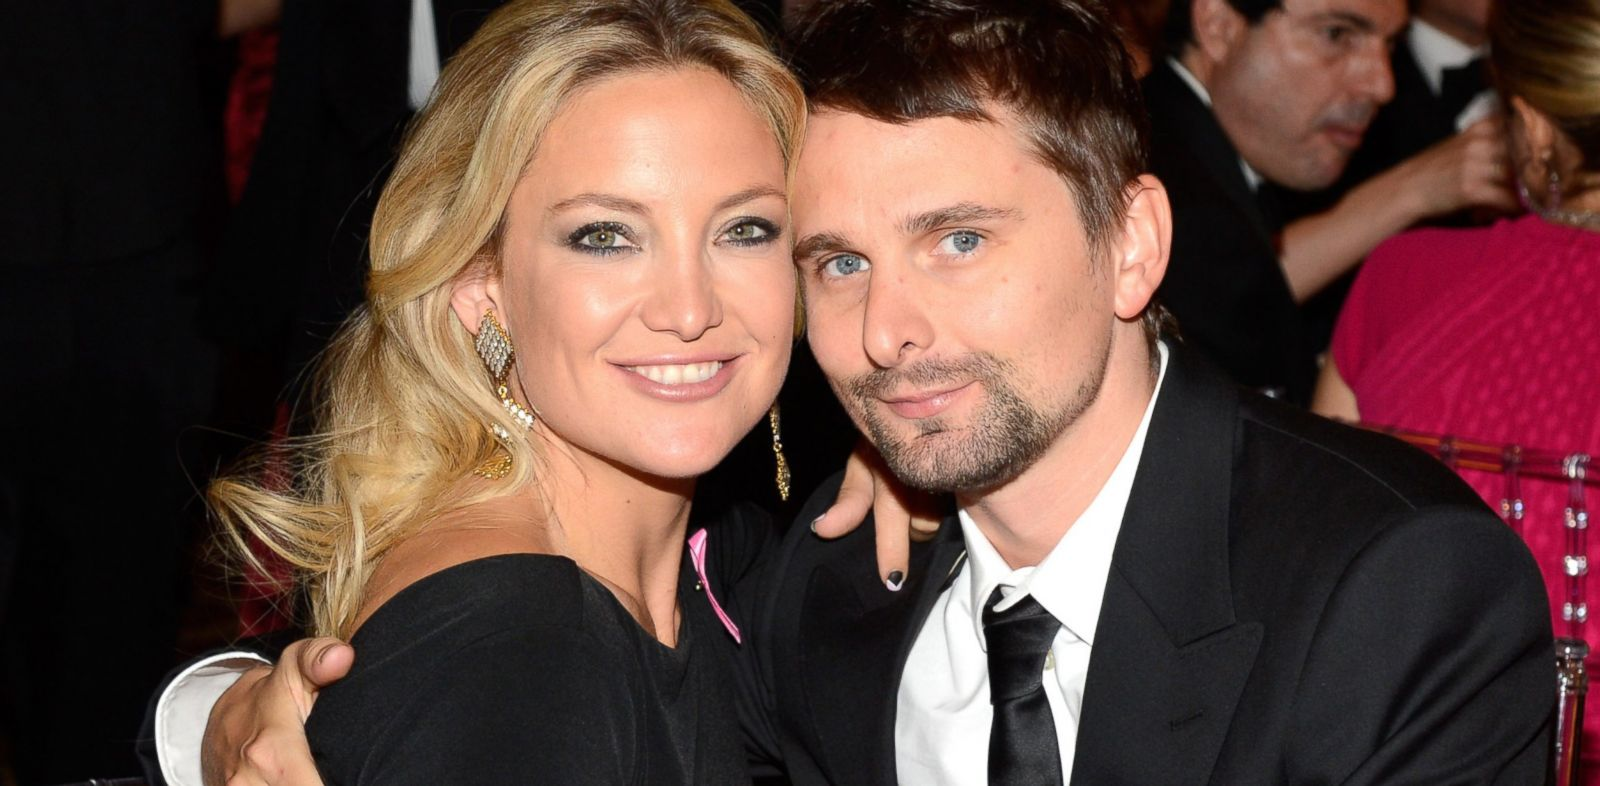 PHOTO: Kate Hudson and Matt Bellamy attend the Breast Cancer Foundations Hot Pink Party at the Waldorf Astoria Hotel in New York, April 17, 2013.